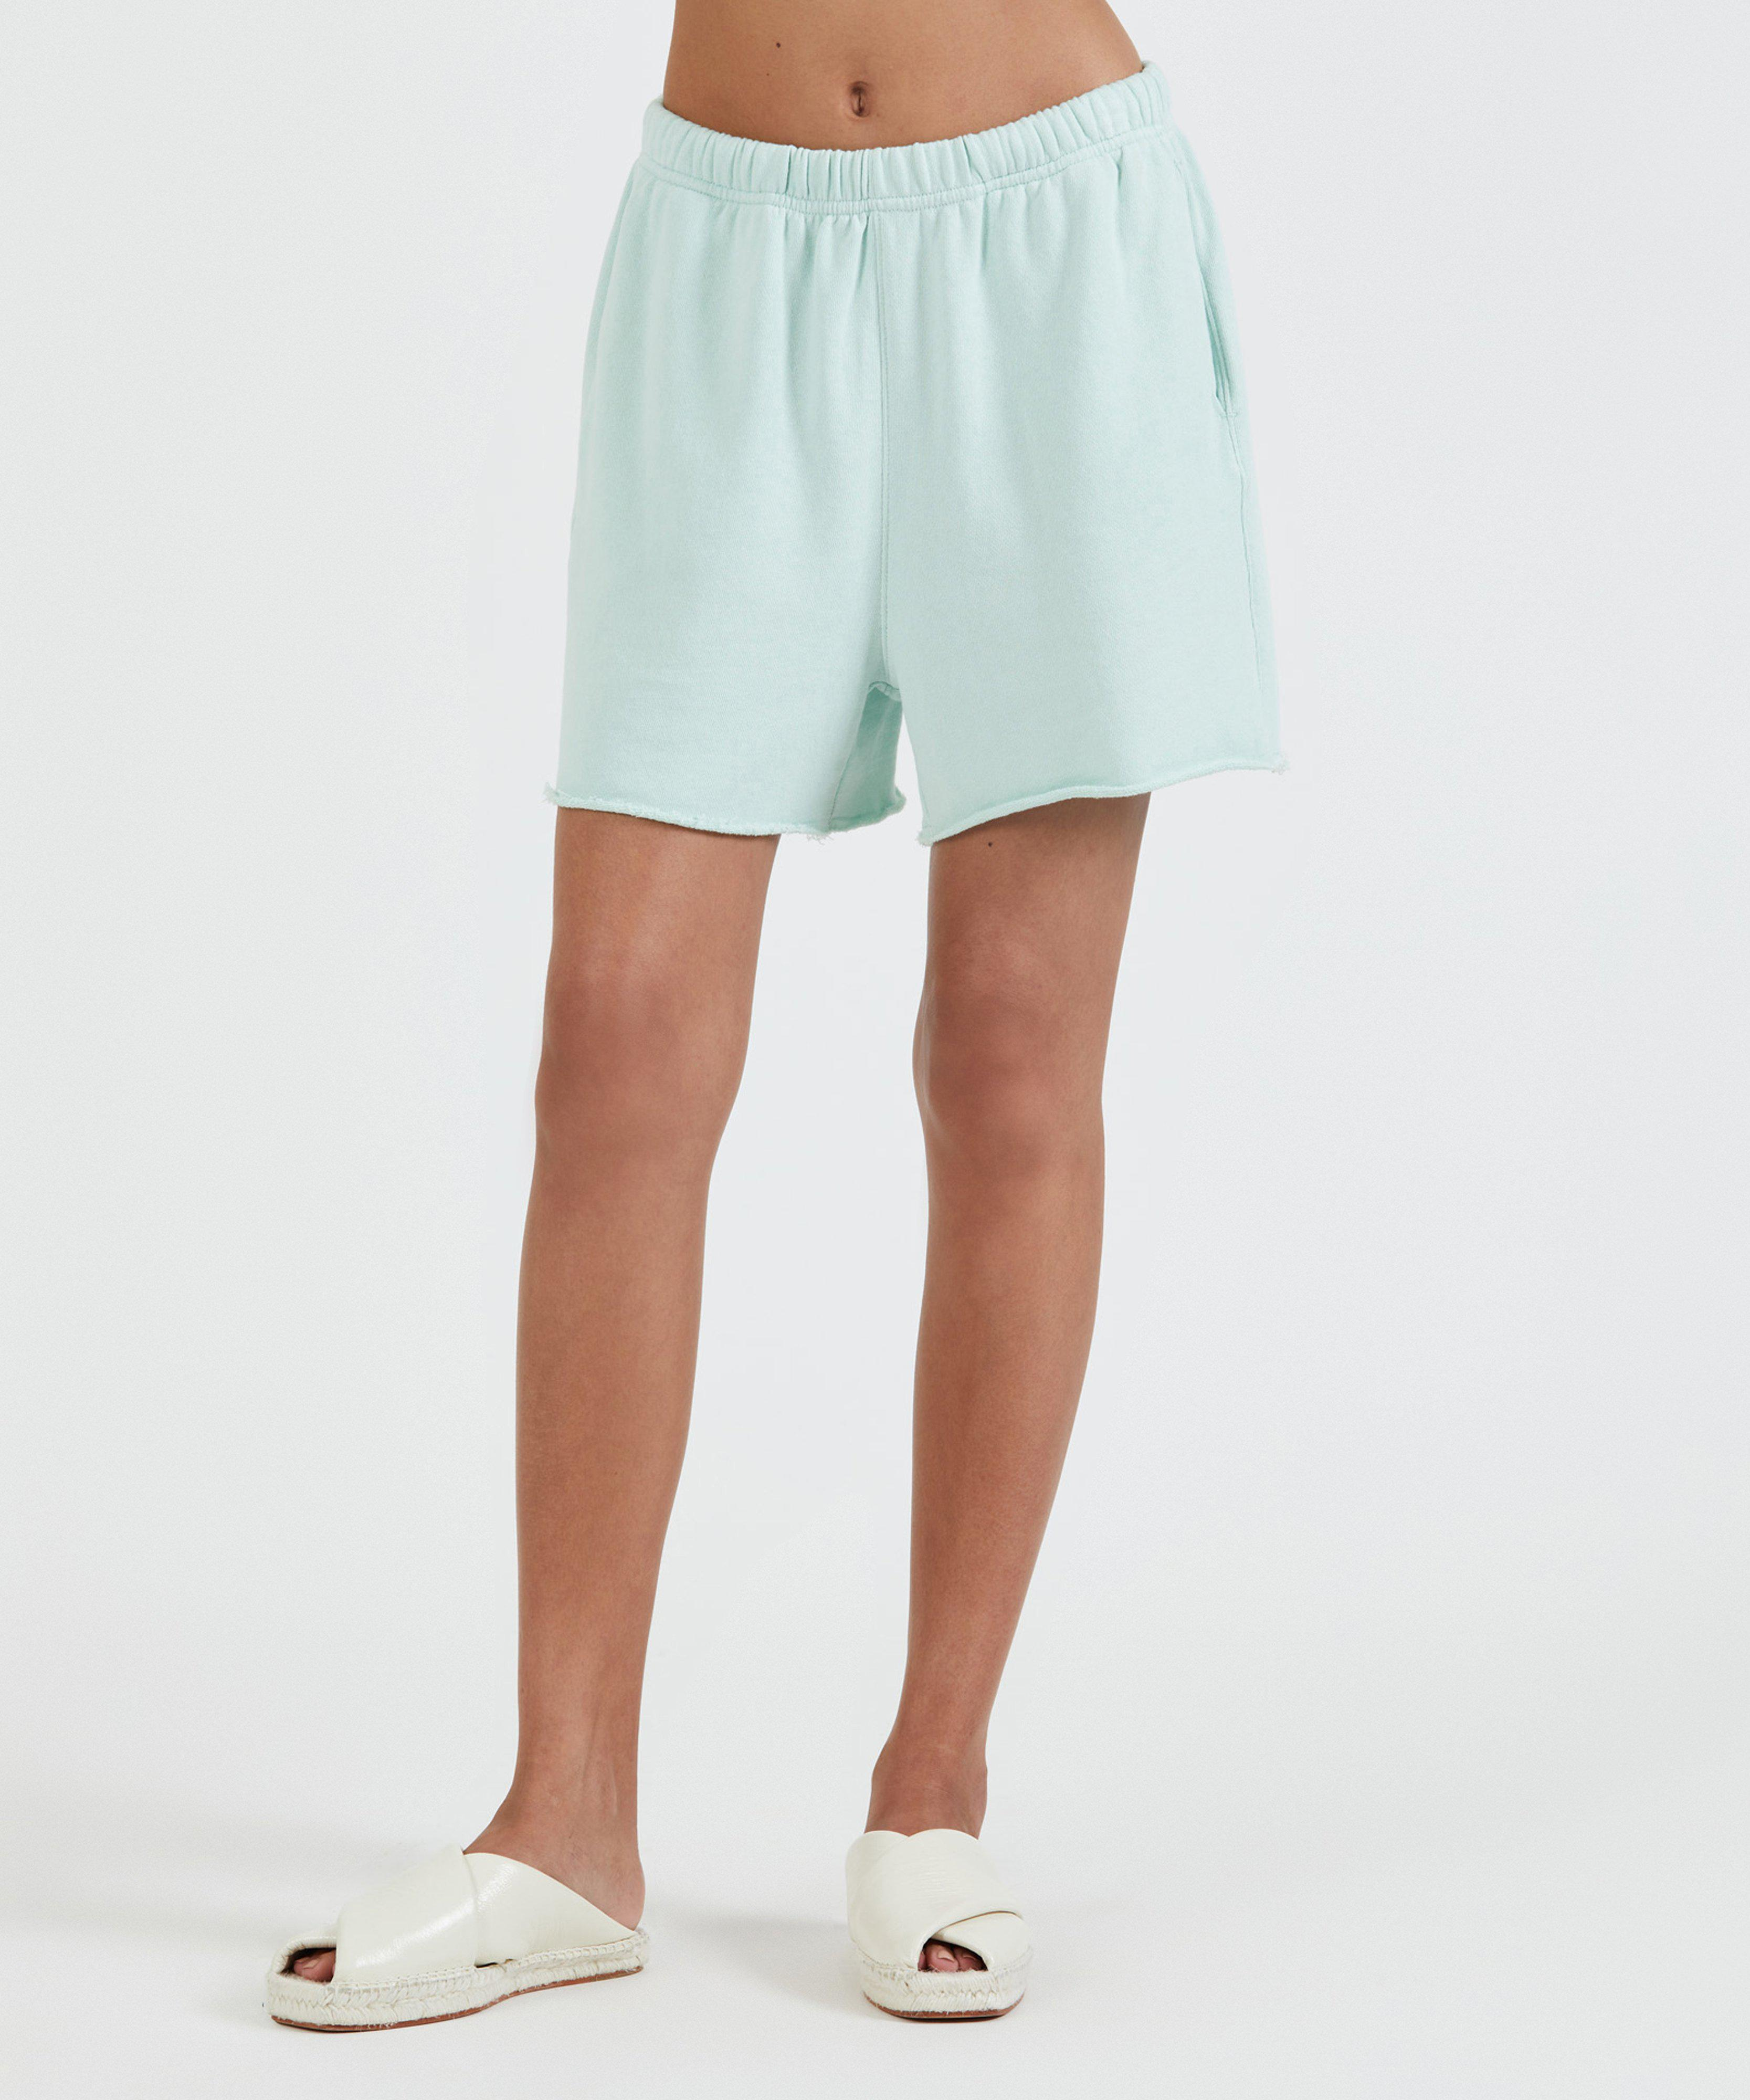 French Terry Pull-On Short - Mint